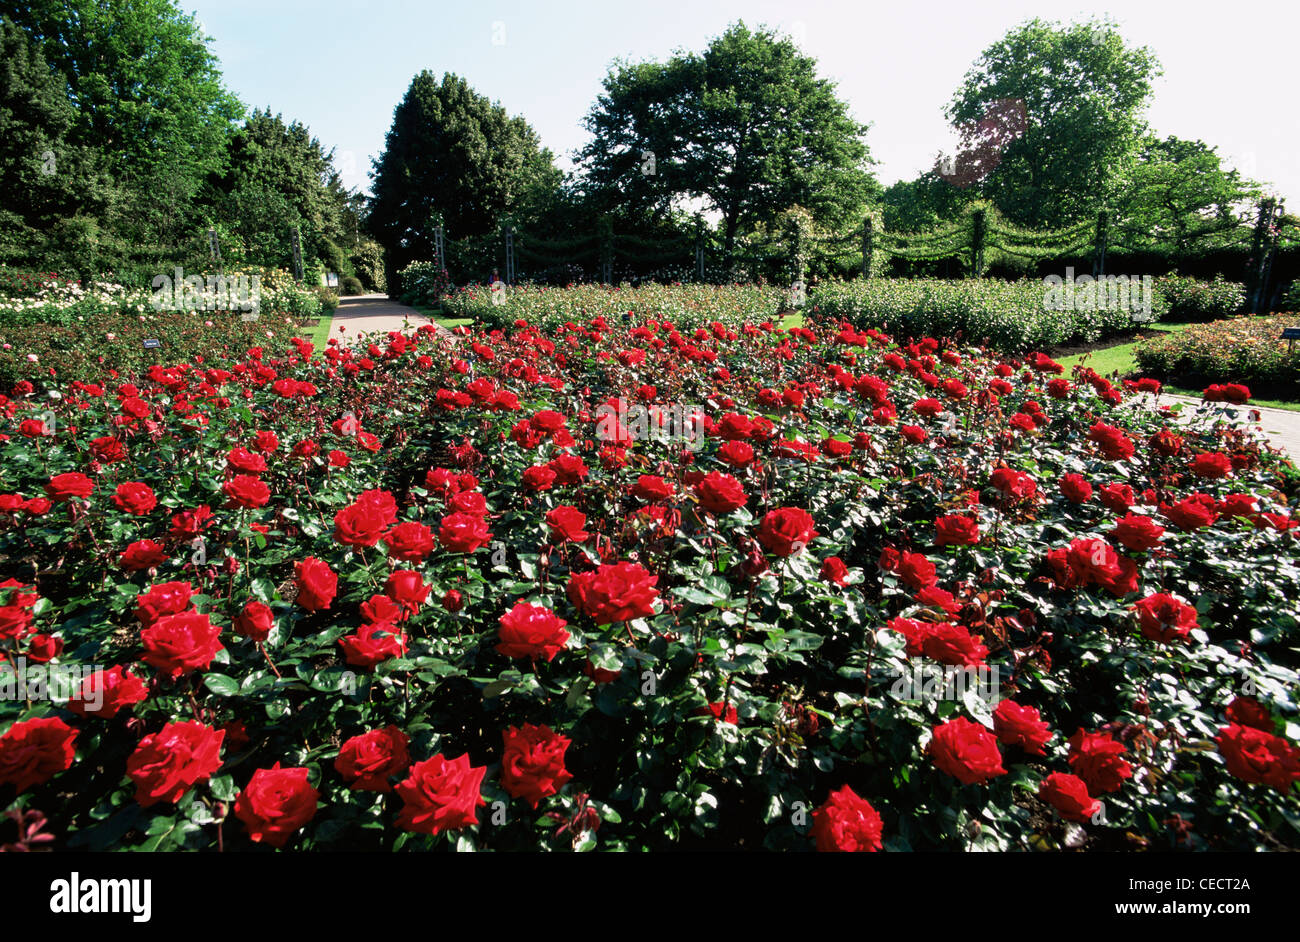 England london regents park queen mary 39 s gardens rose for Garden design queens park